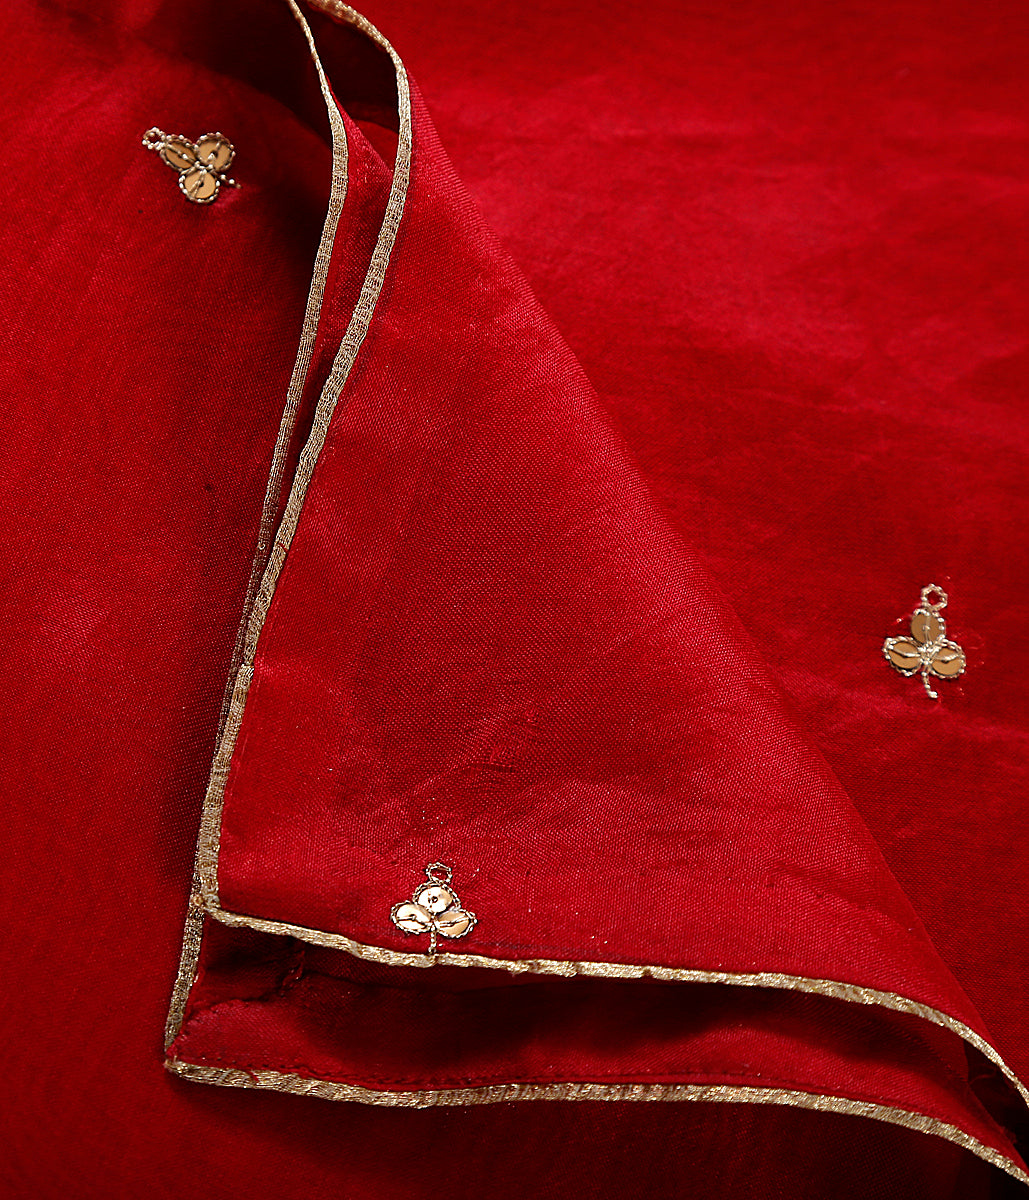 Handwoven organza dupatta in red with zardozi hand embroidered motifs